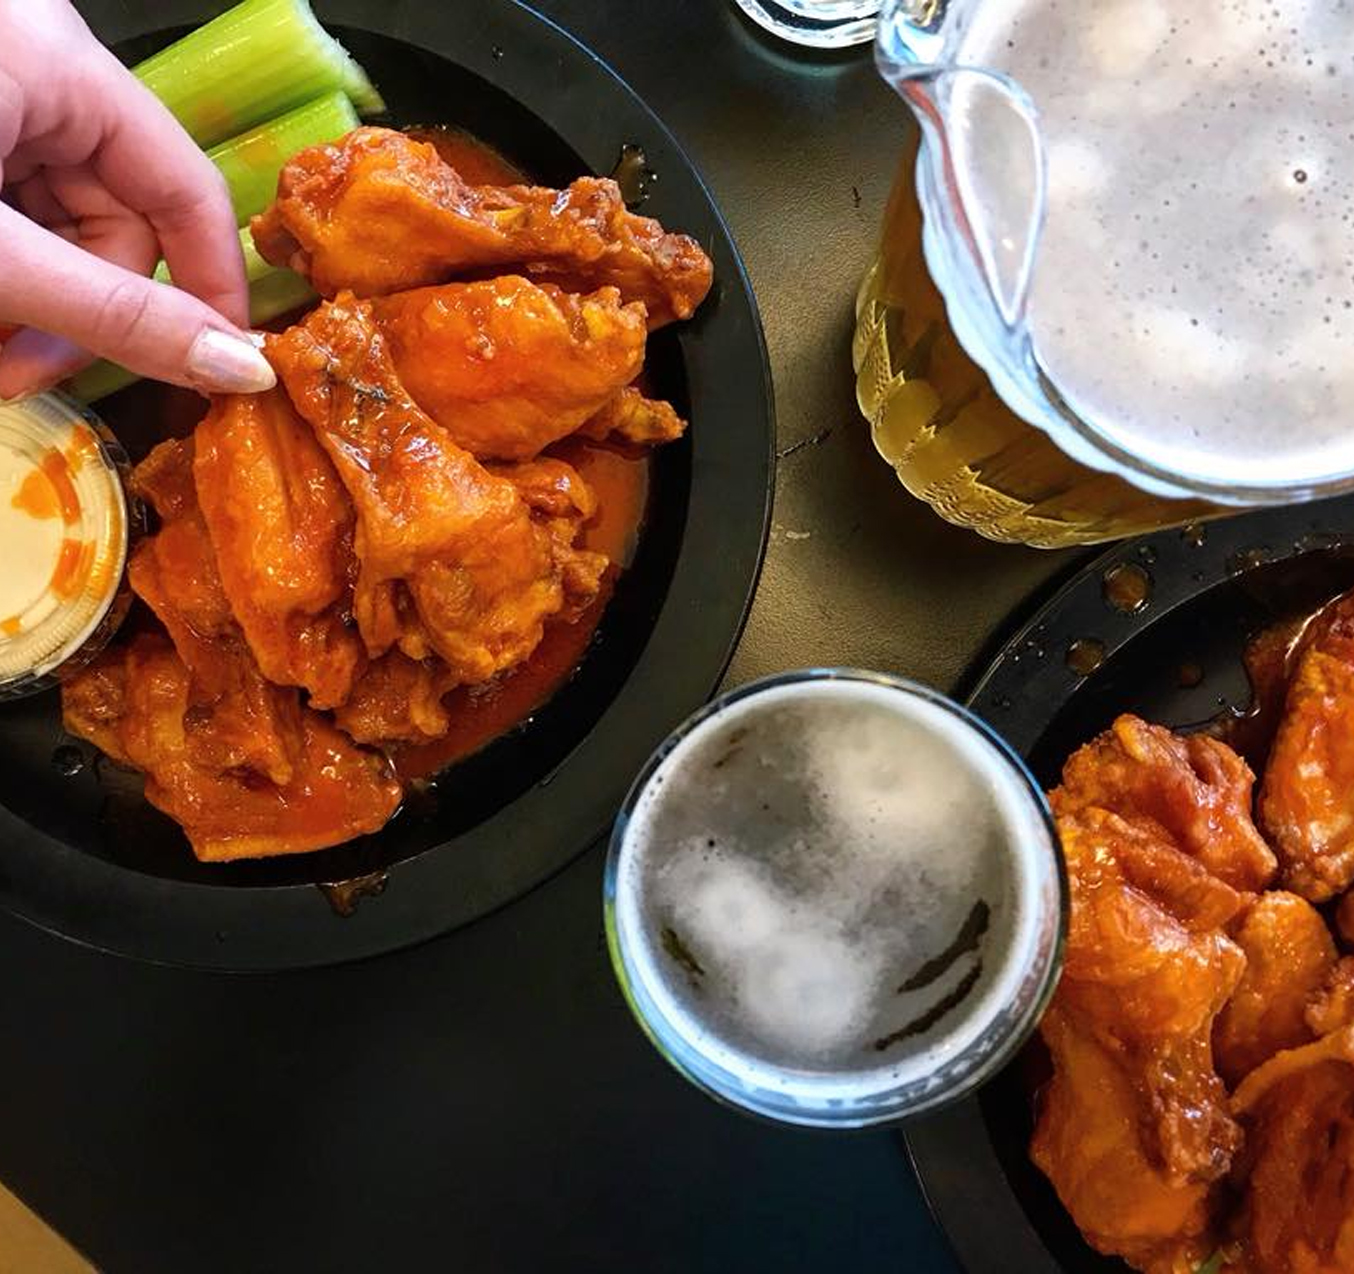 Where to Eat In Buffalo - Duff's Famous Wings